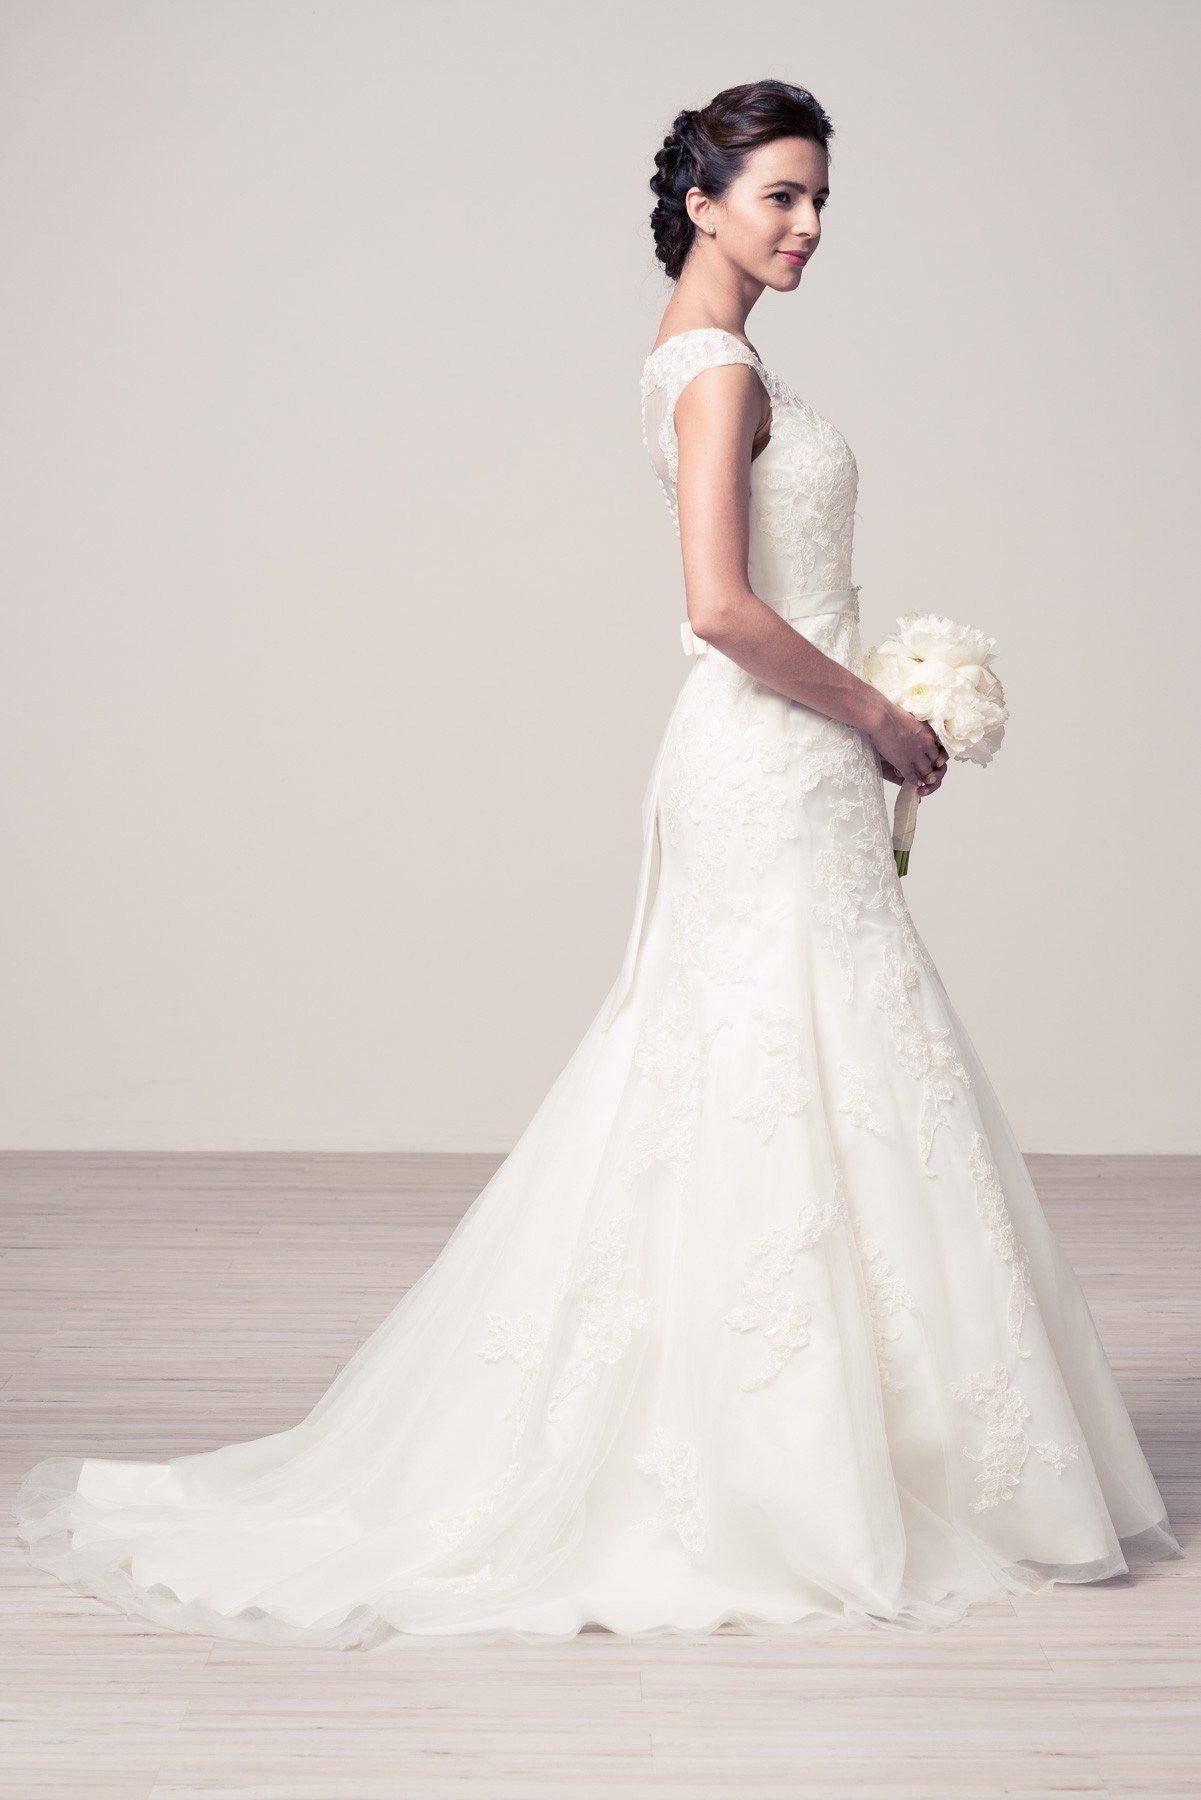 debc417f7d8a1 ... Romantic cap sleeve lace wedding dress #wjw2054 Affordable wedding dress  - Simply Fab Dress